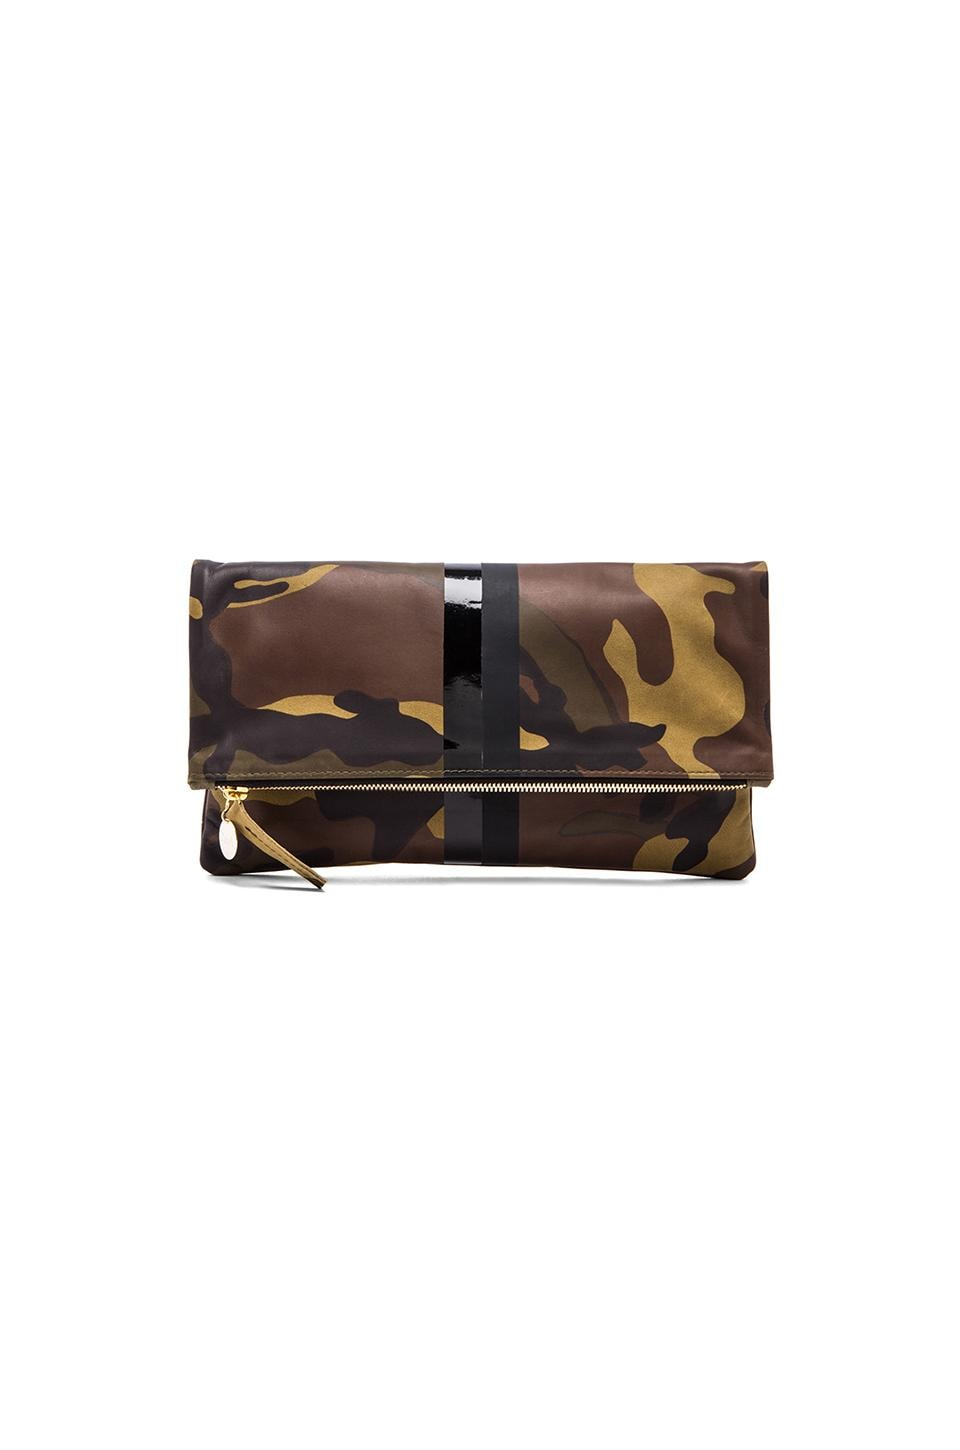 Clare V. Foldover Clutch in Green Camo